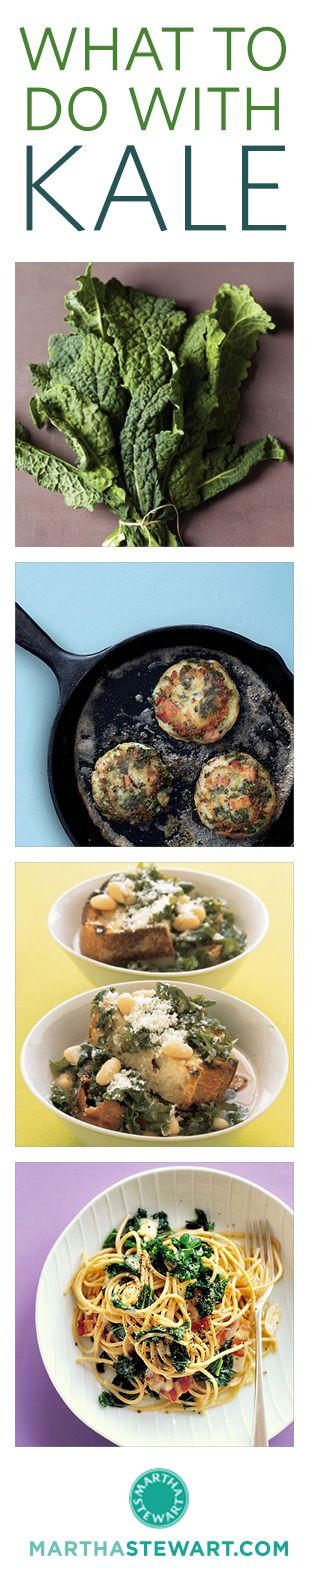 Over 20 delicious ways to cook kale this winter.